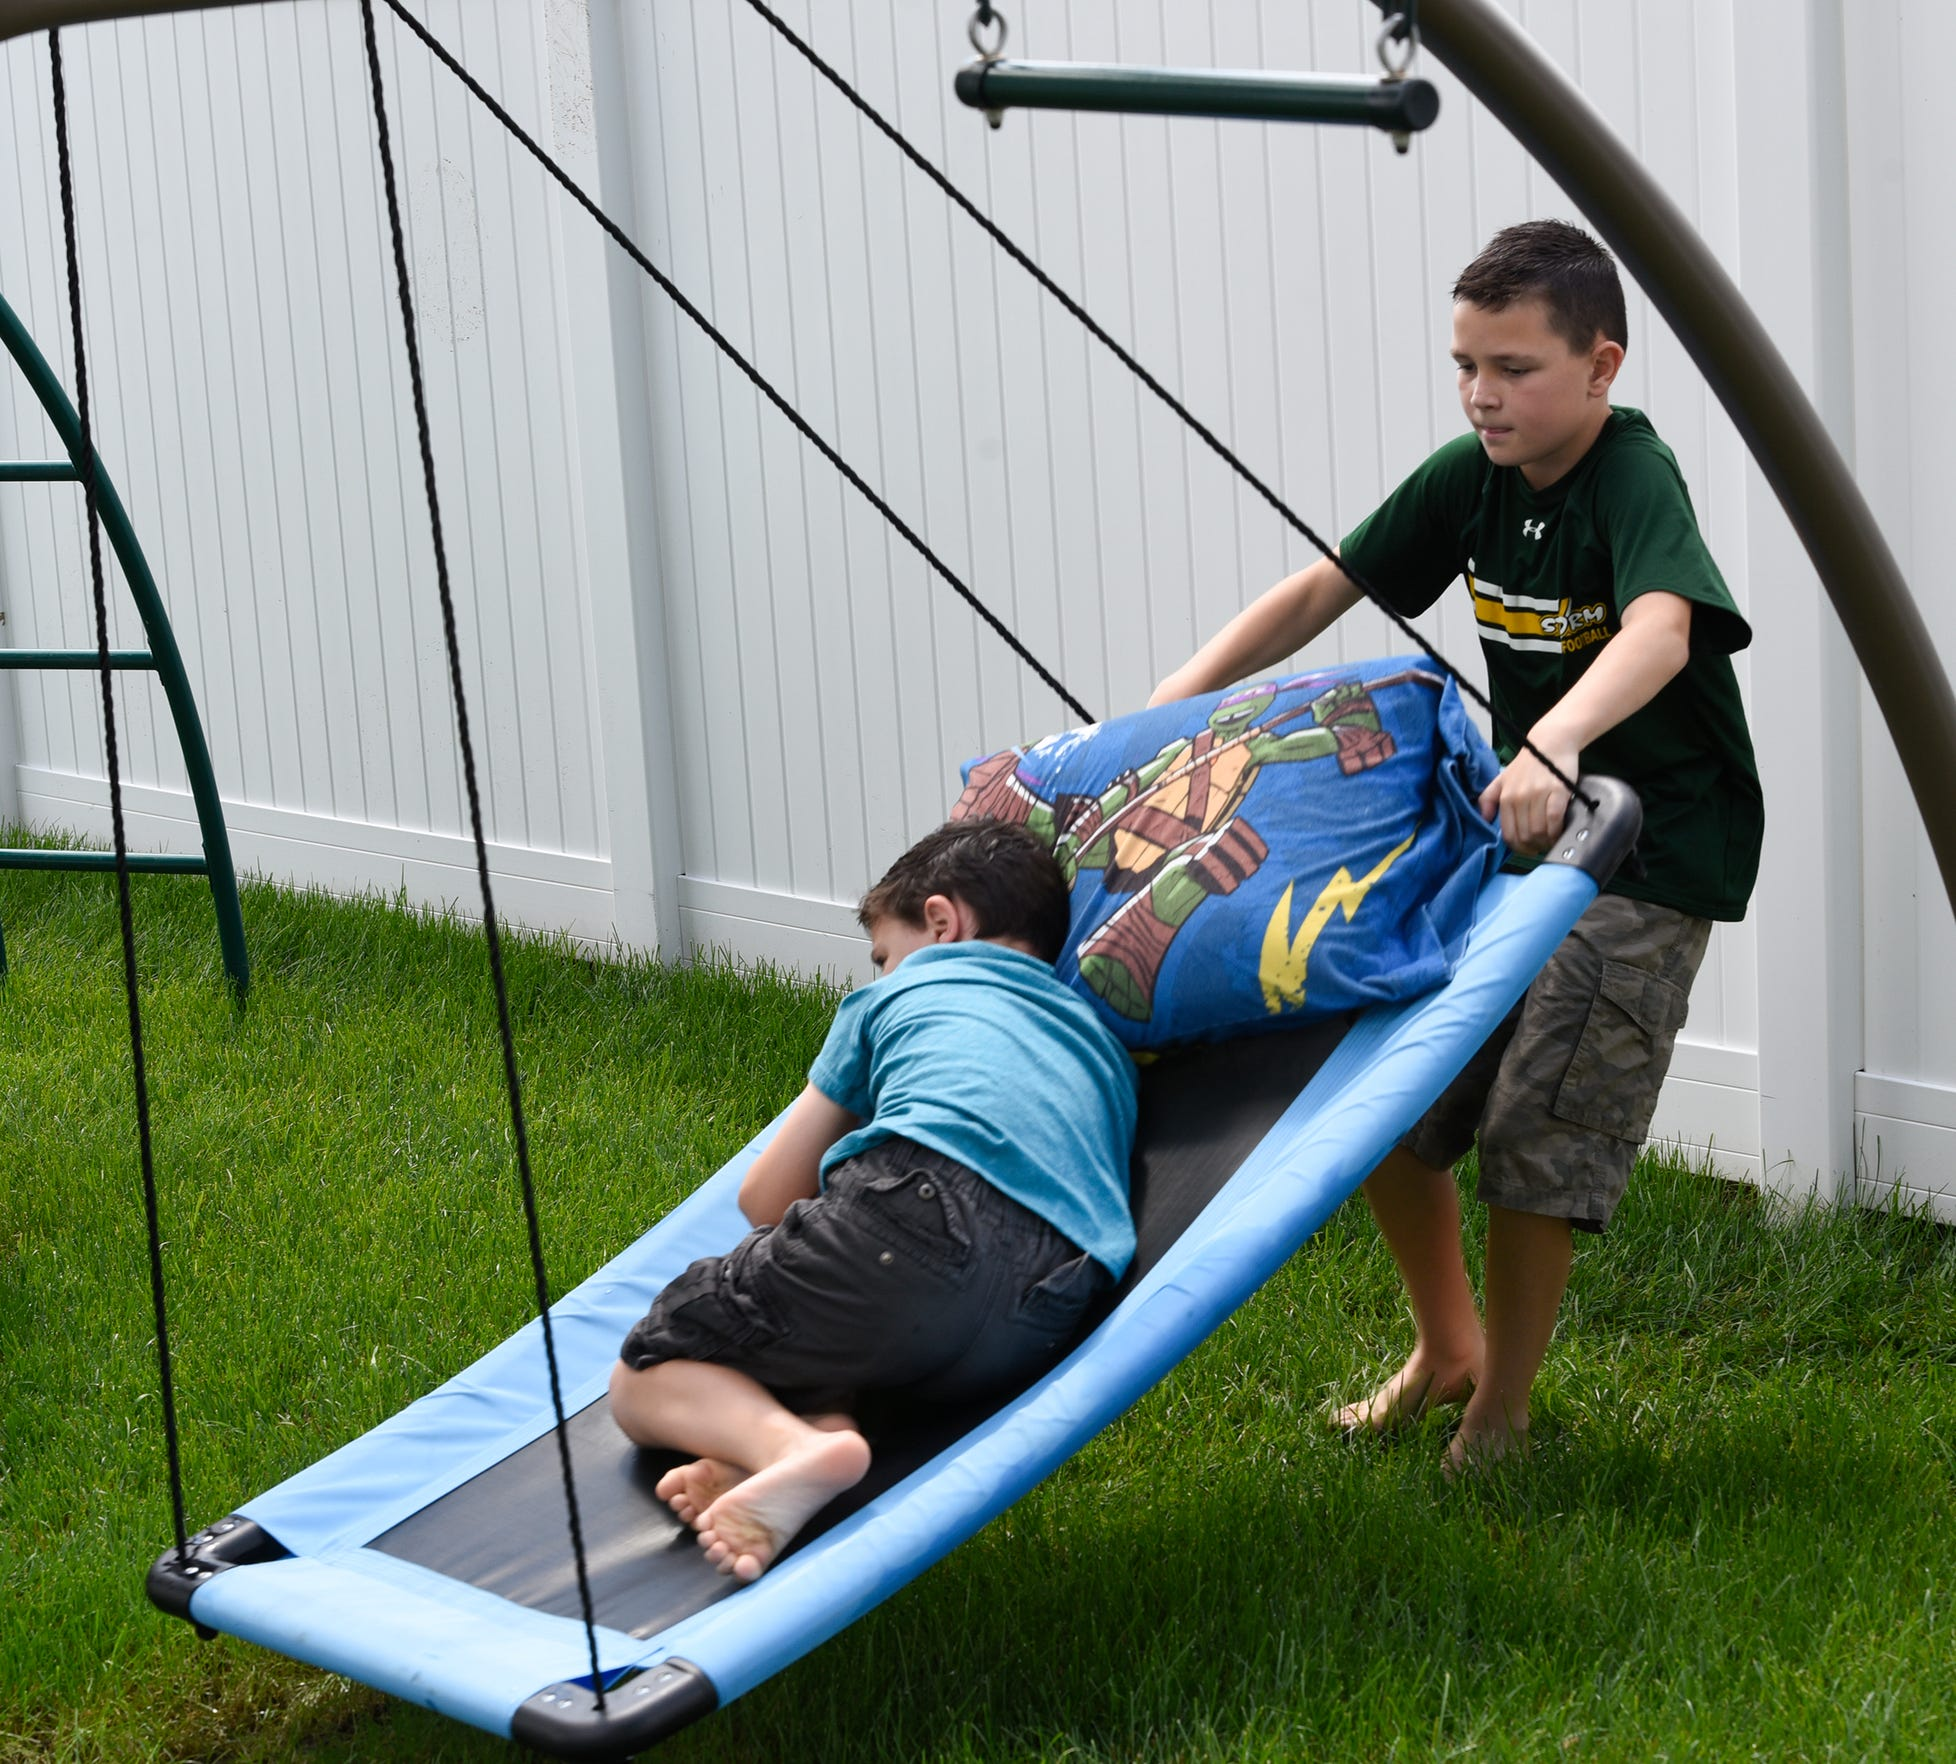 Tyson Newville-Larson pushes his brother Carter on a swing Tuesday, July 2, 2019.